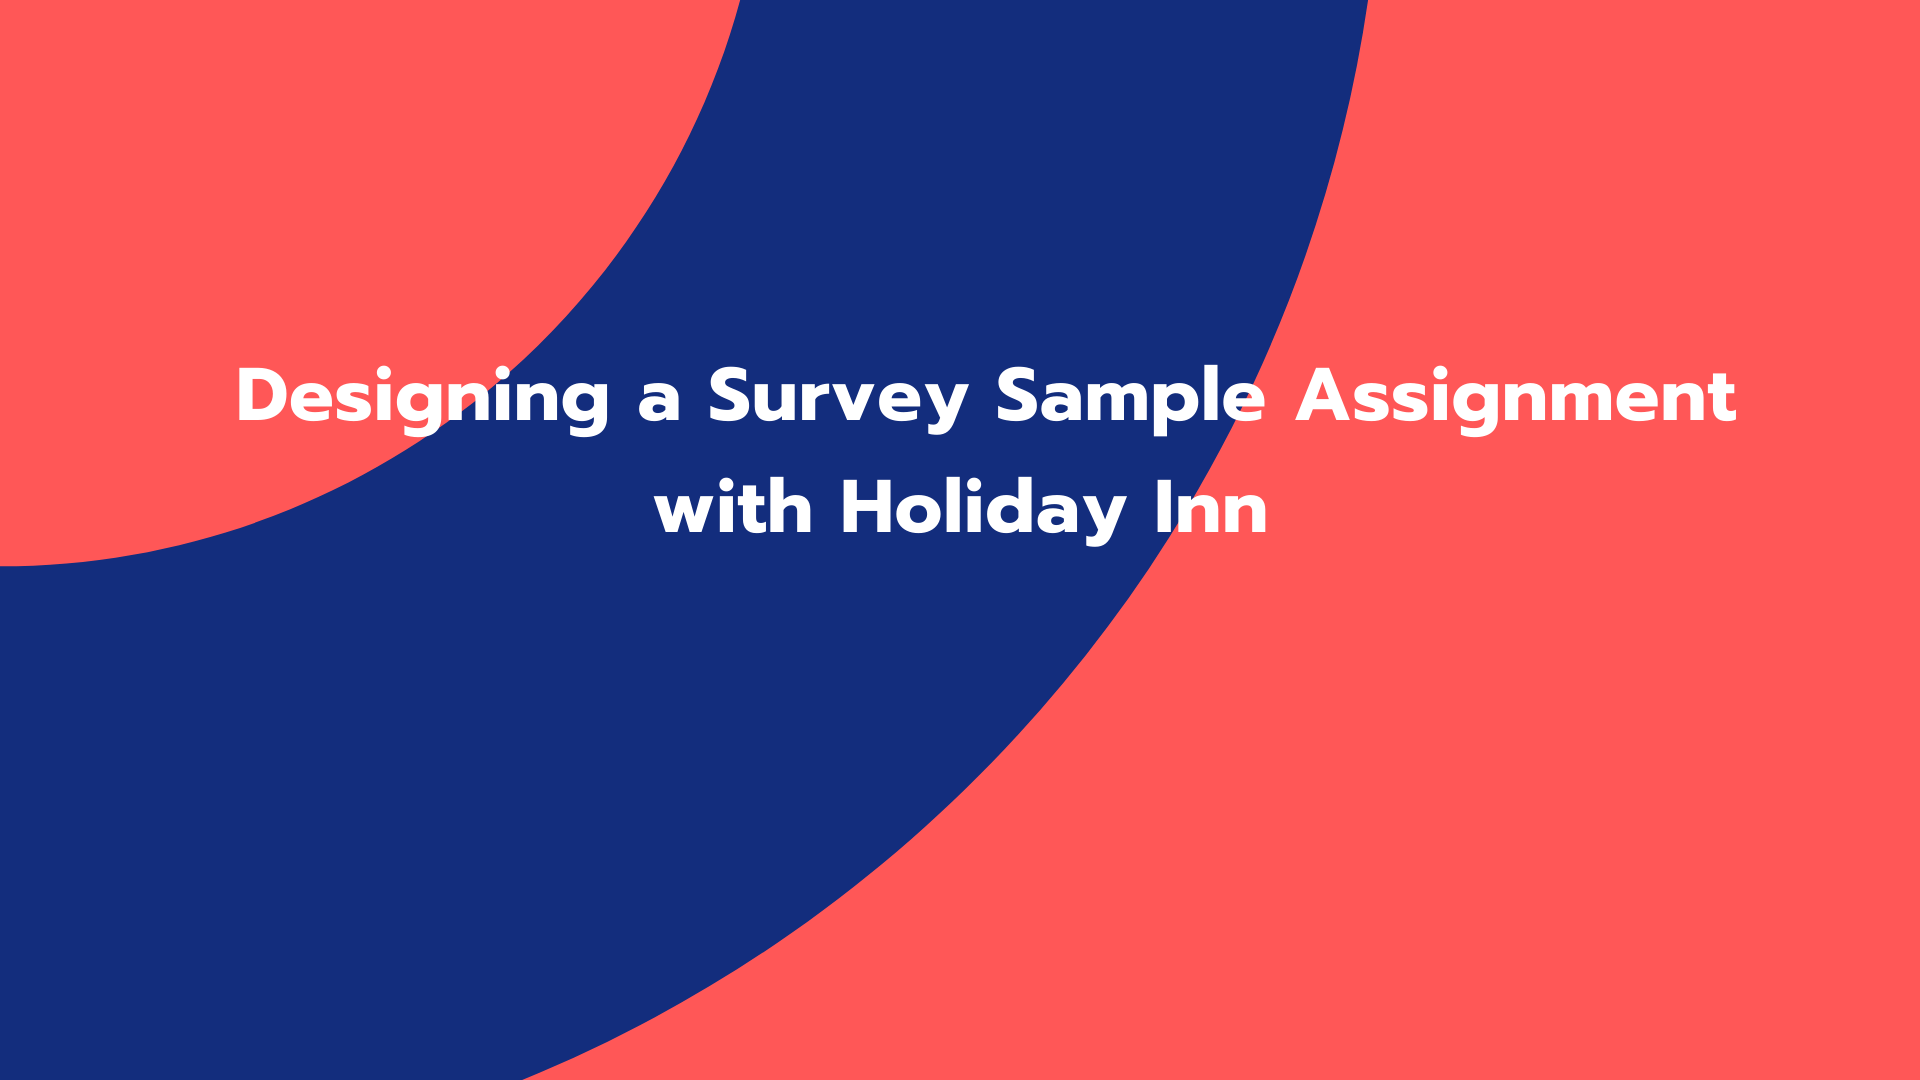 Designing a Survey Sample Assignment with Holiday Inn